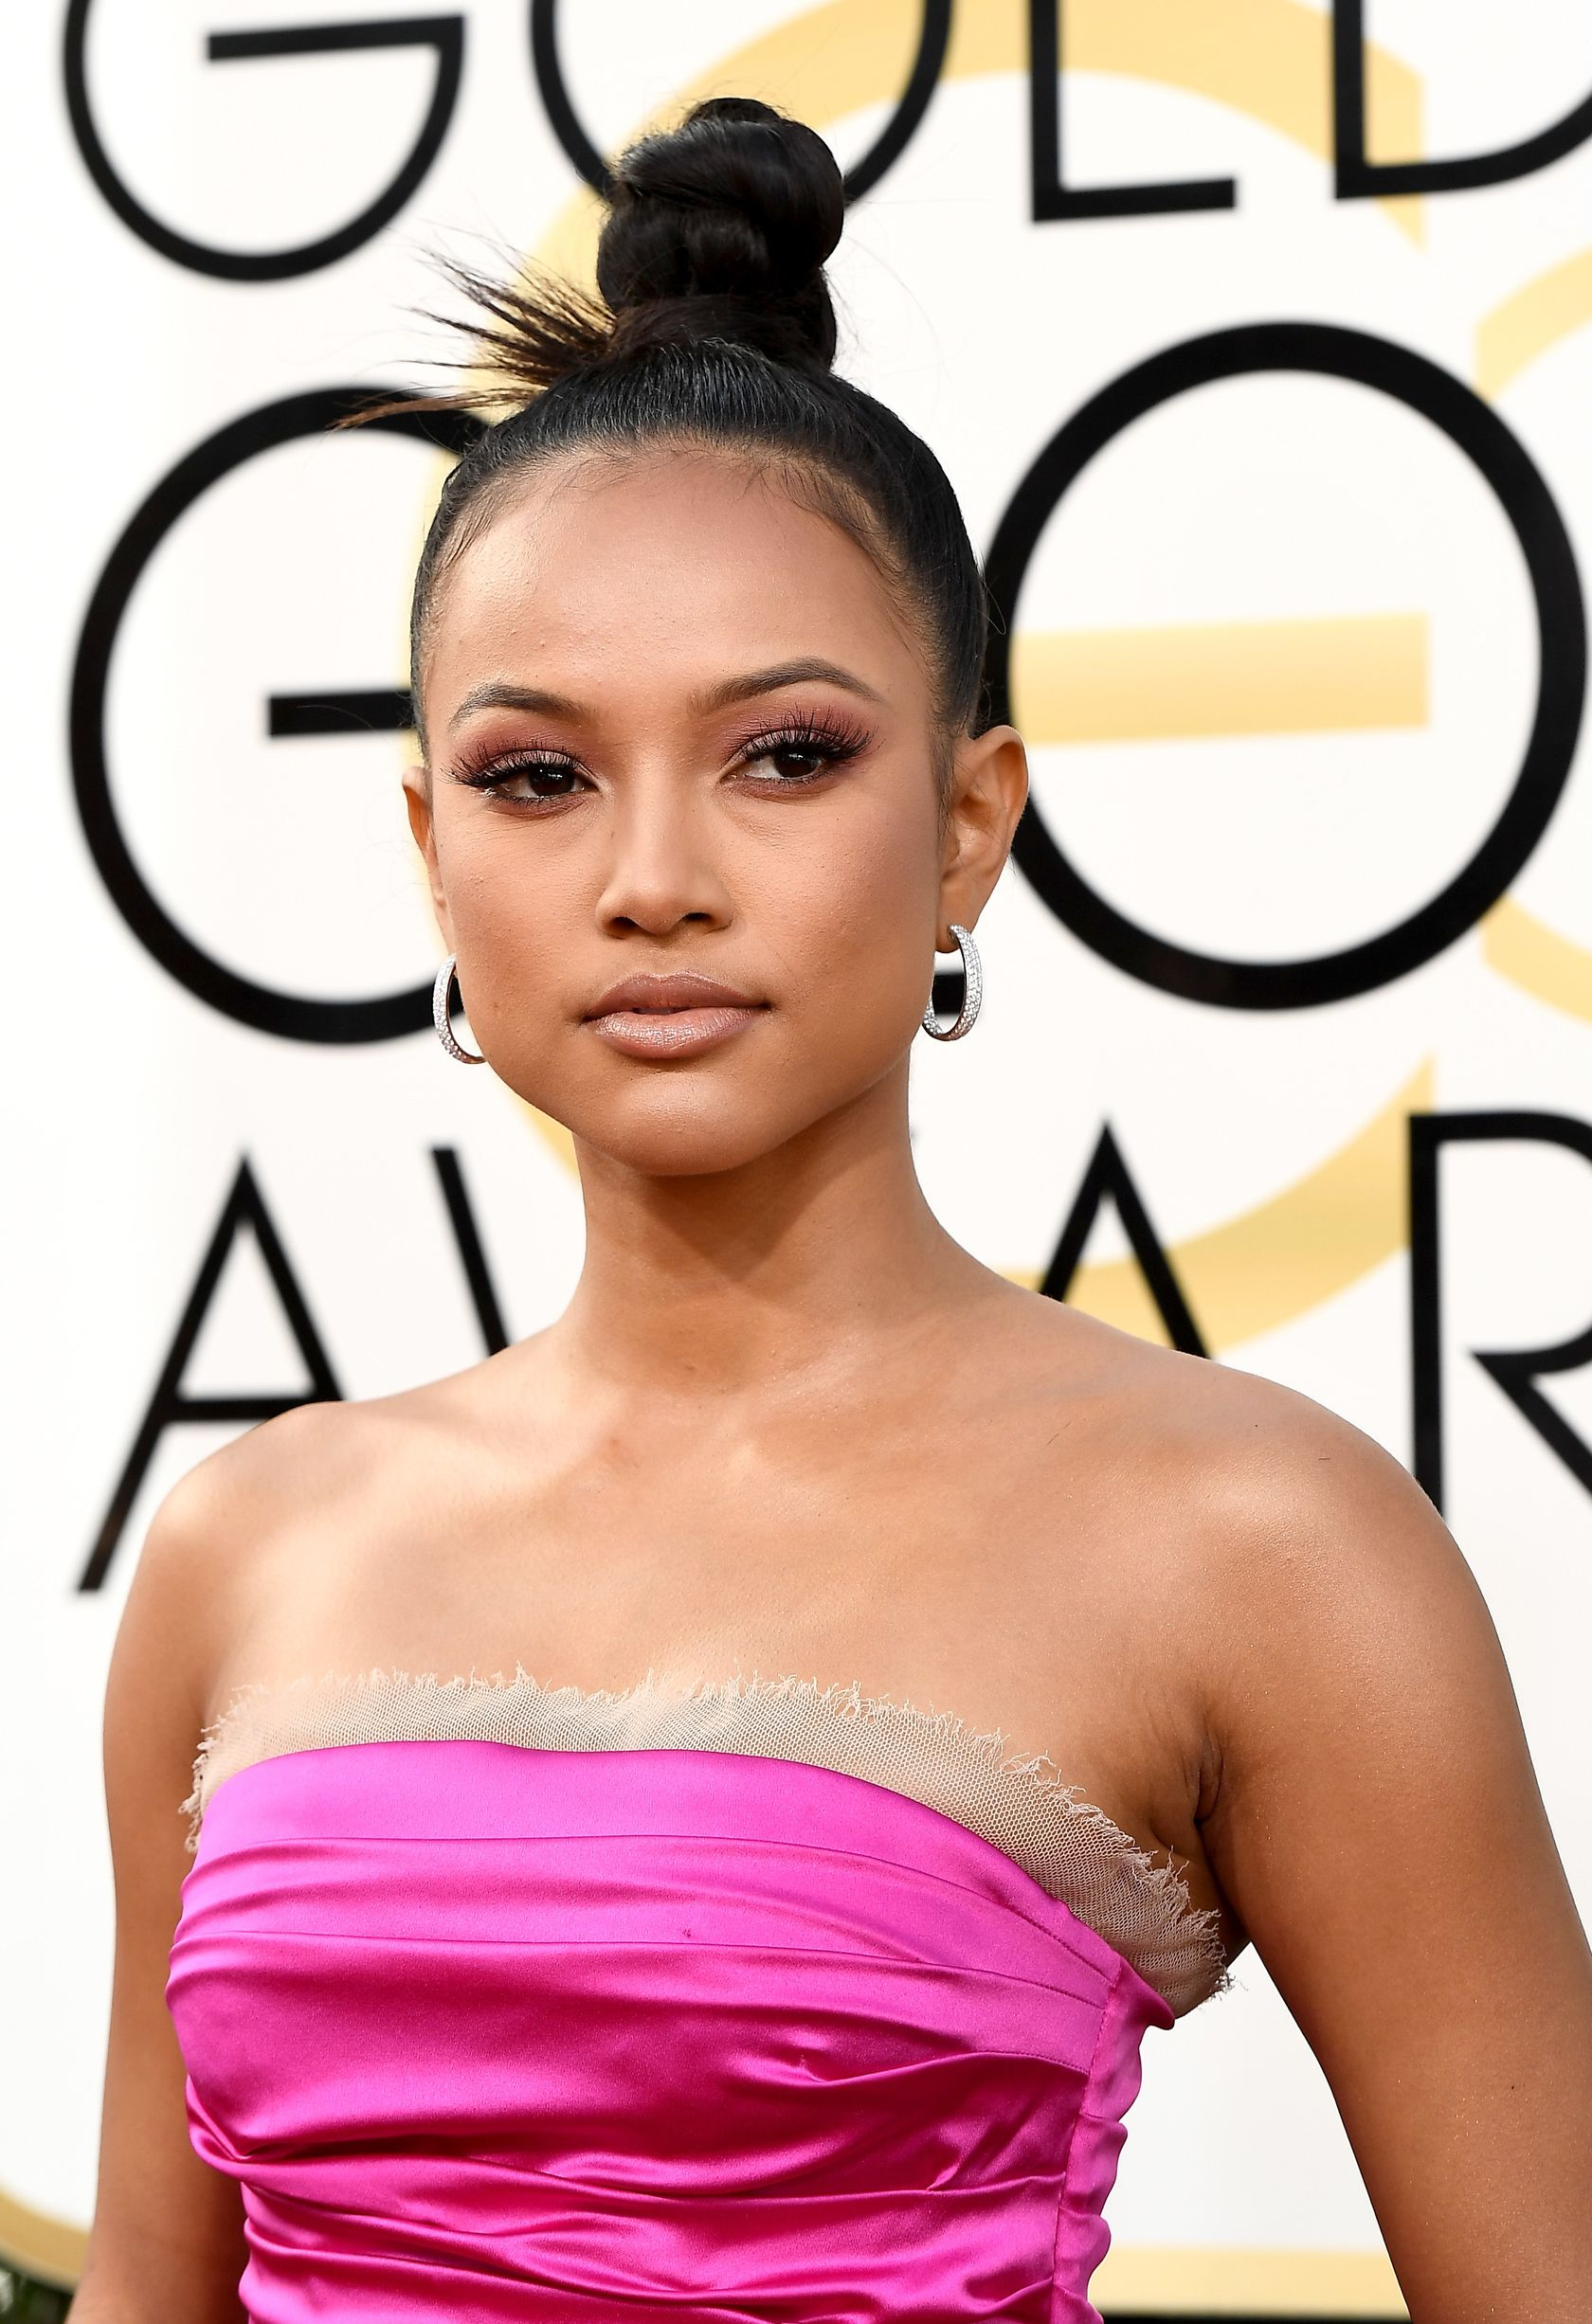 Karrueche Tran nude photos 2019